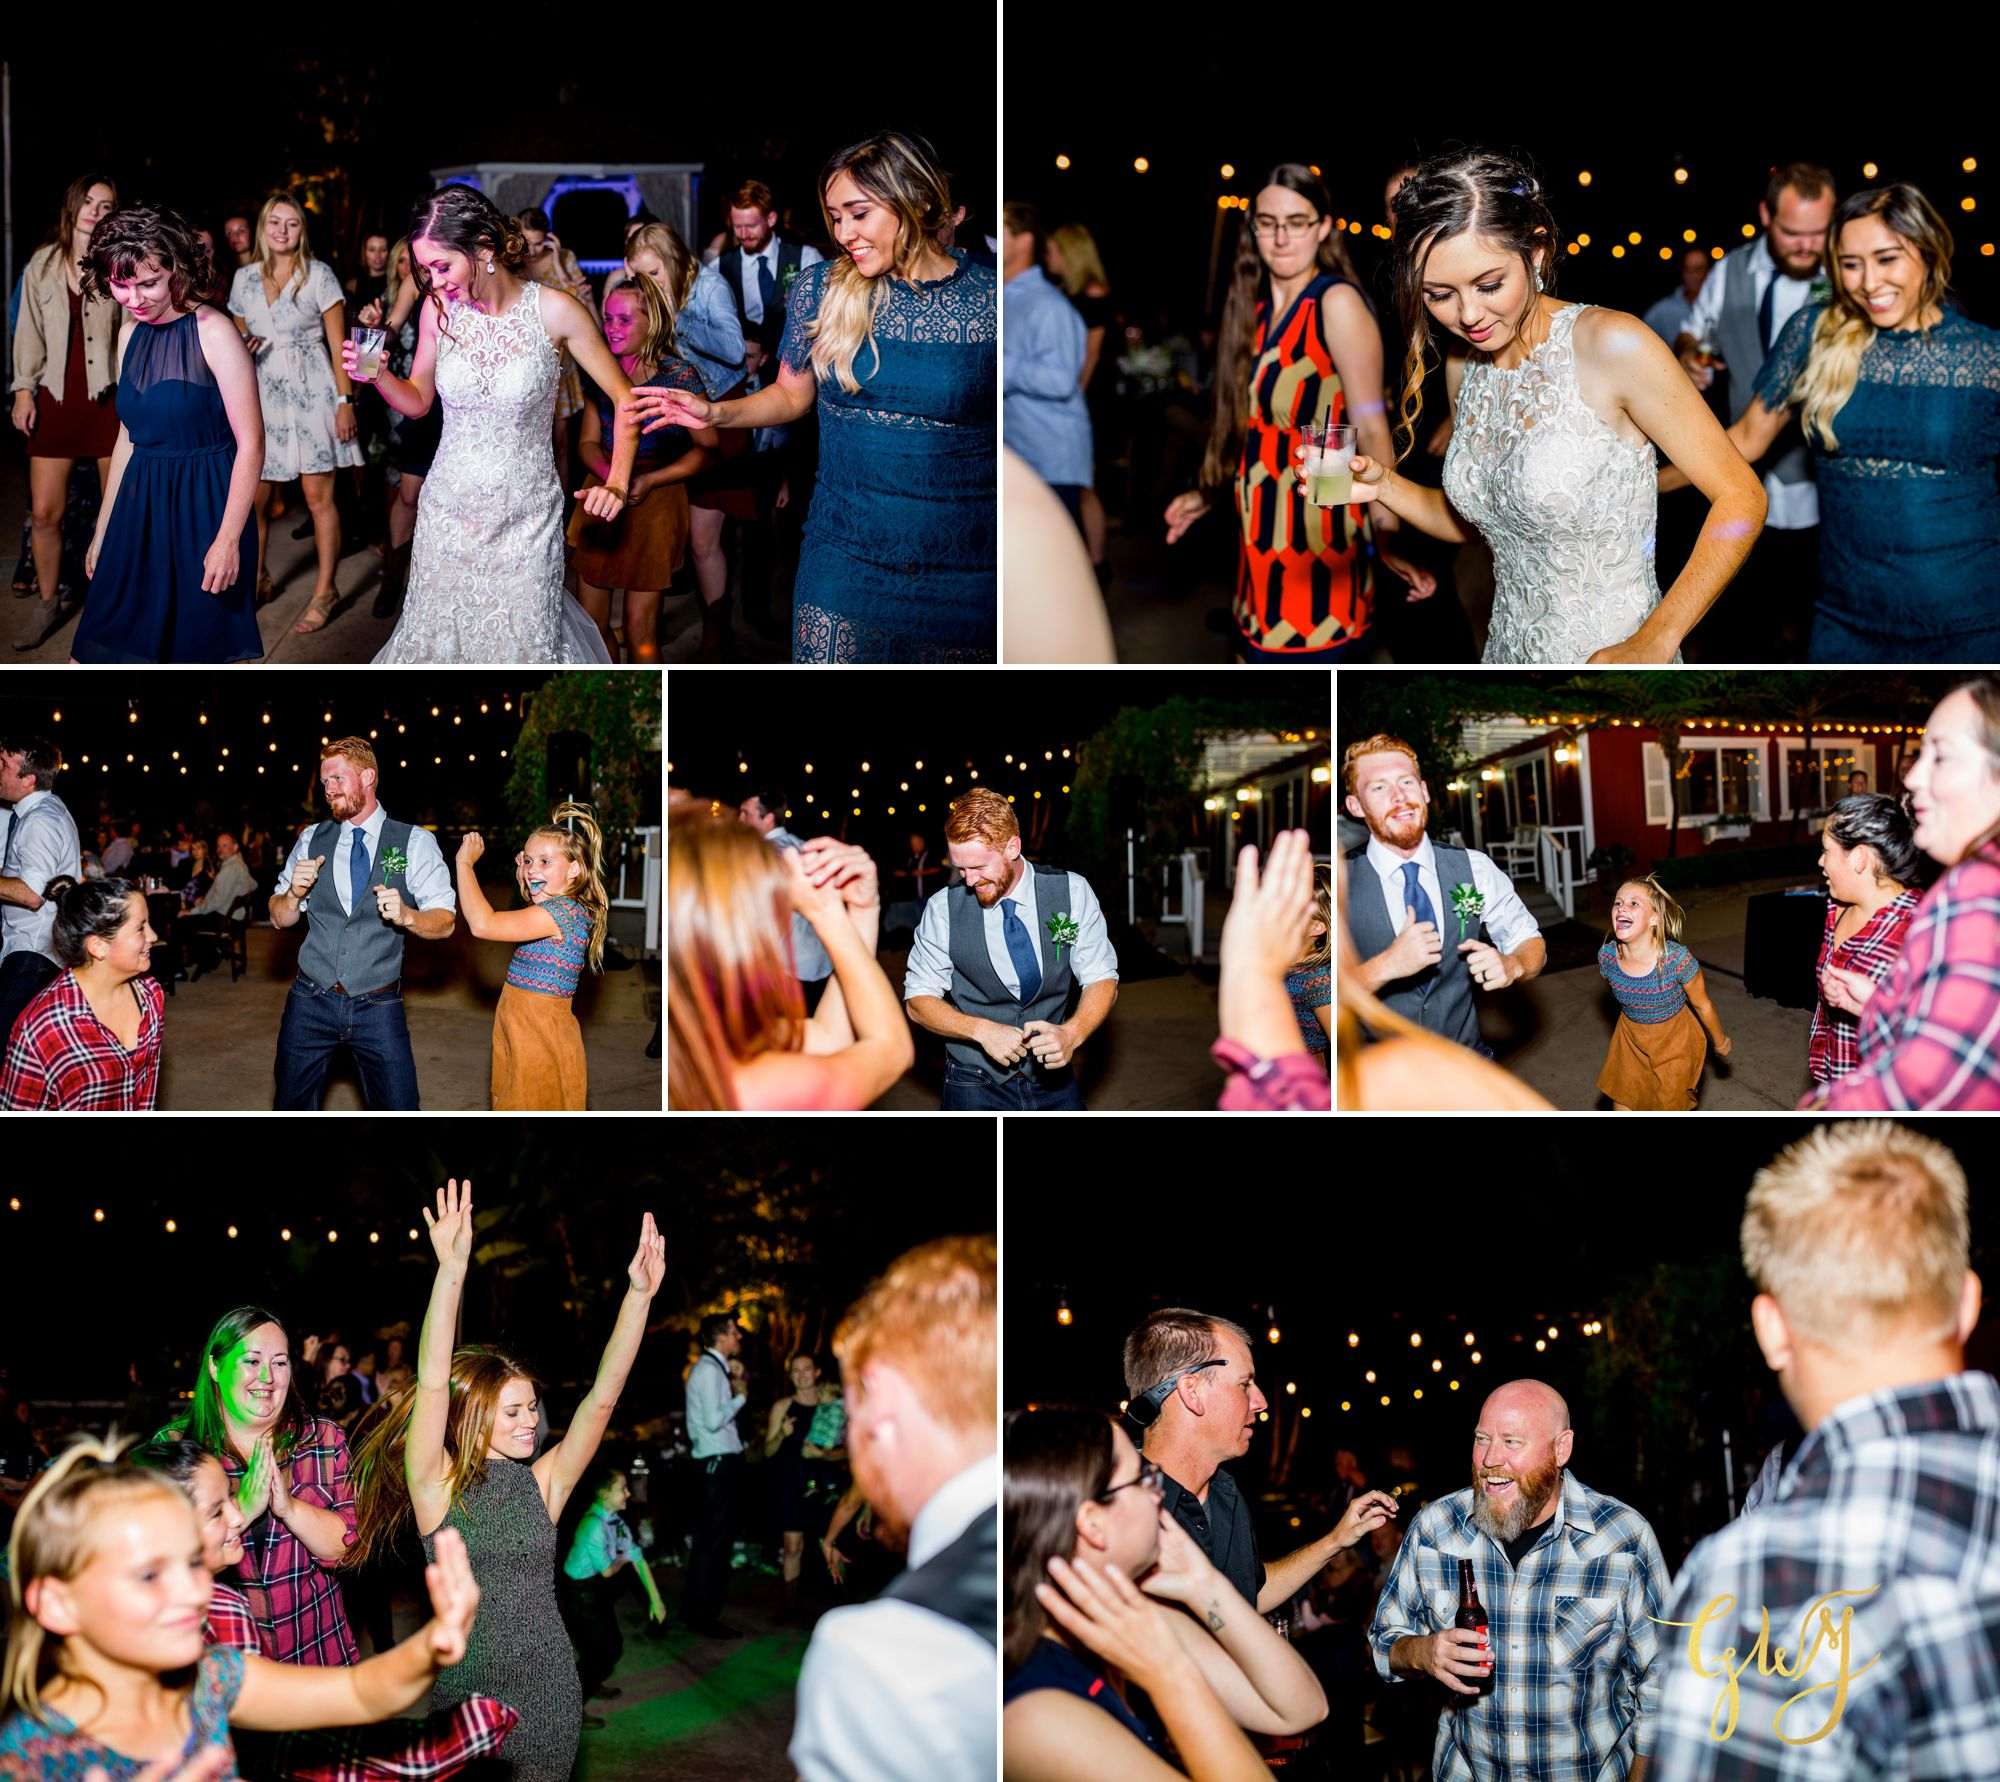 Hannah + Troy's Rustic Red Horse Barn Huntington Beach Wedding 2 13.jpg